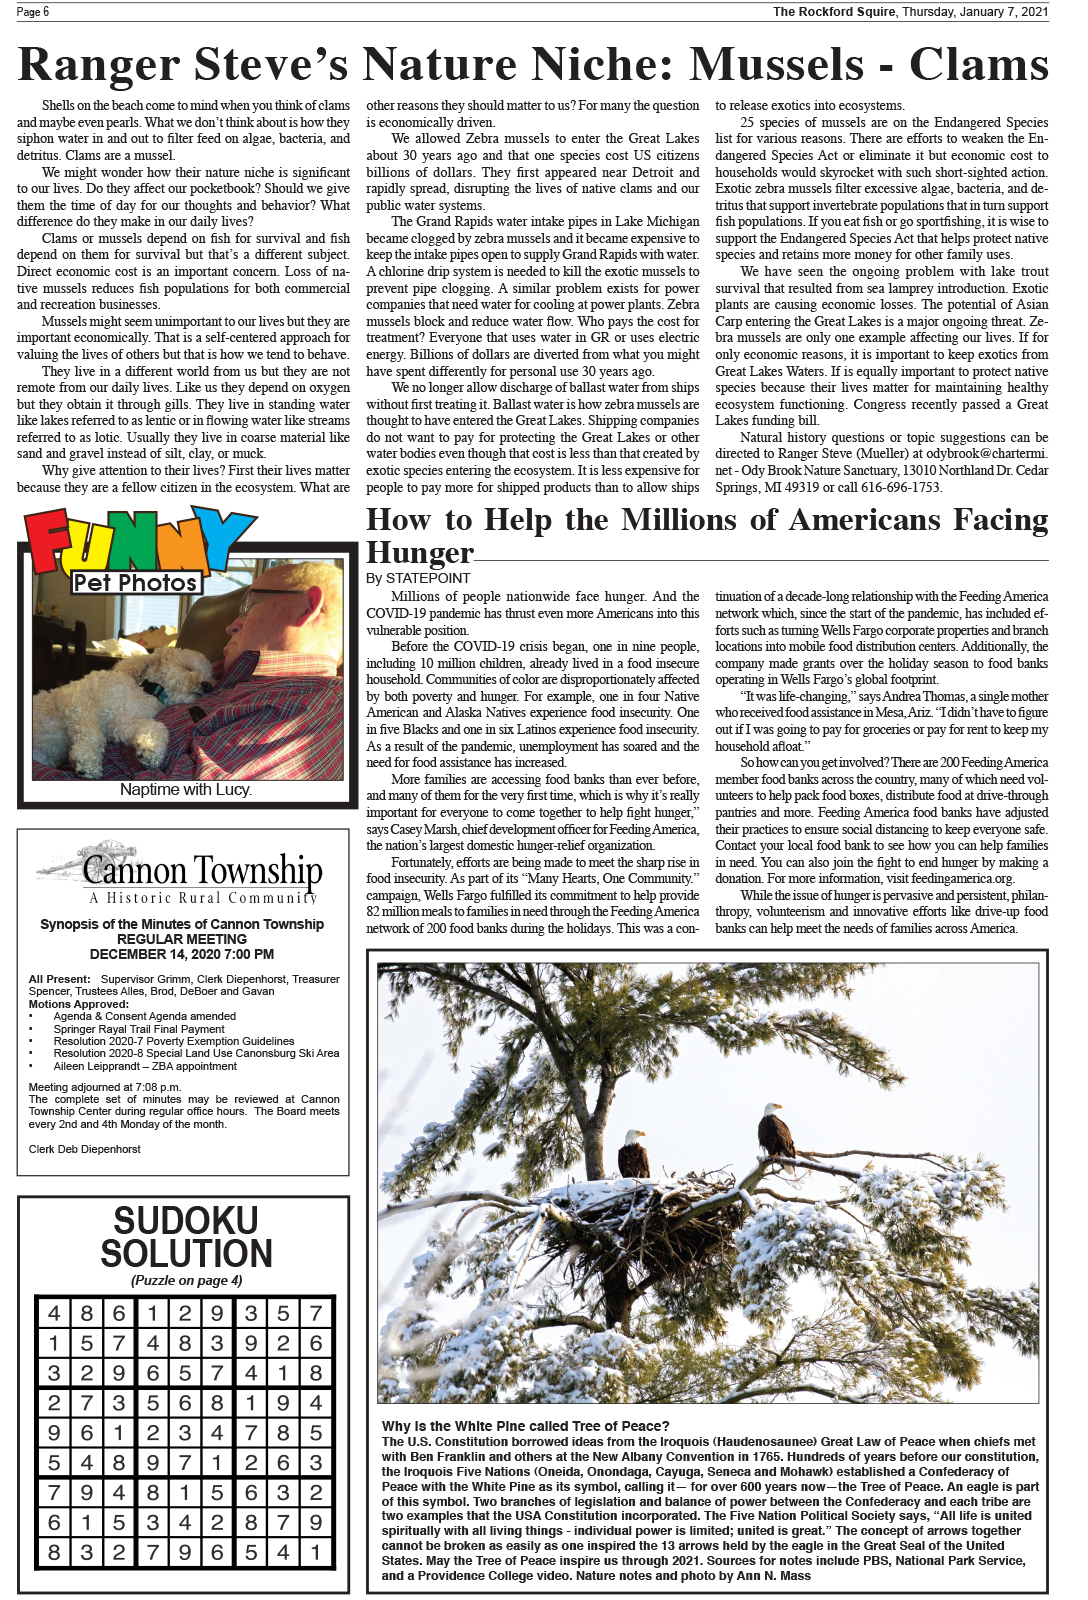 The Rockford Squire - Thursday, January 7, 2021   The With Regard To Grps Calendar 2021